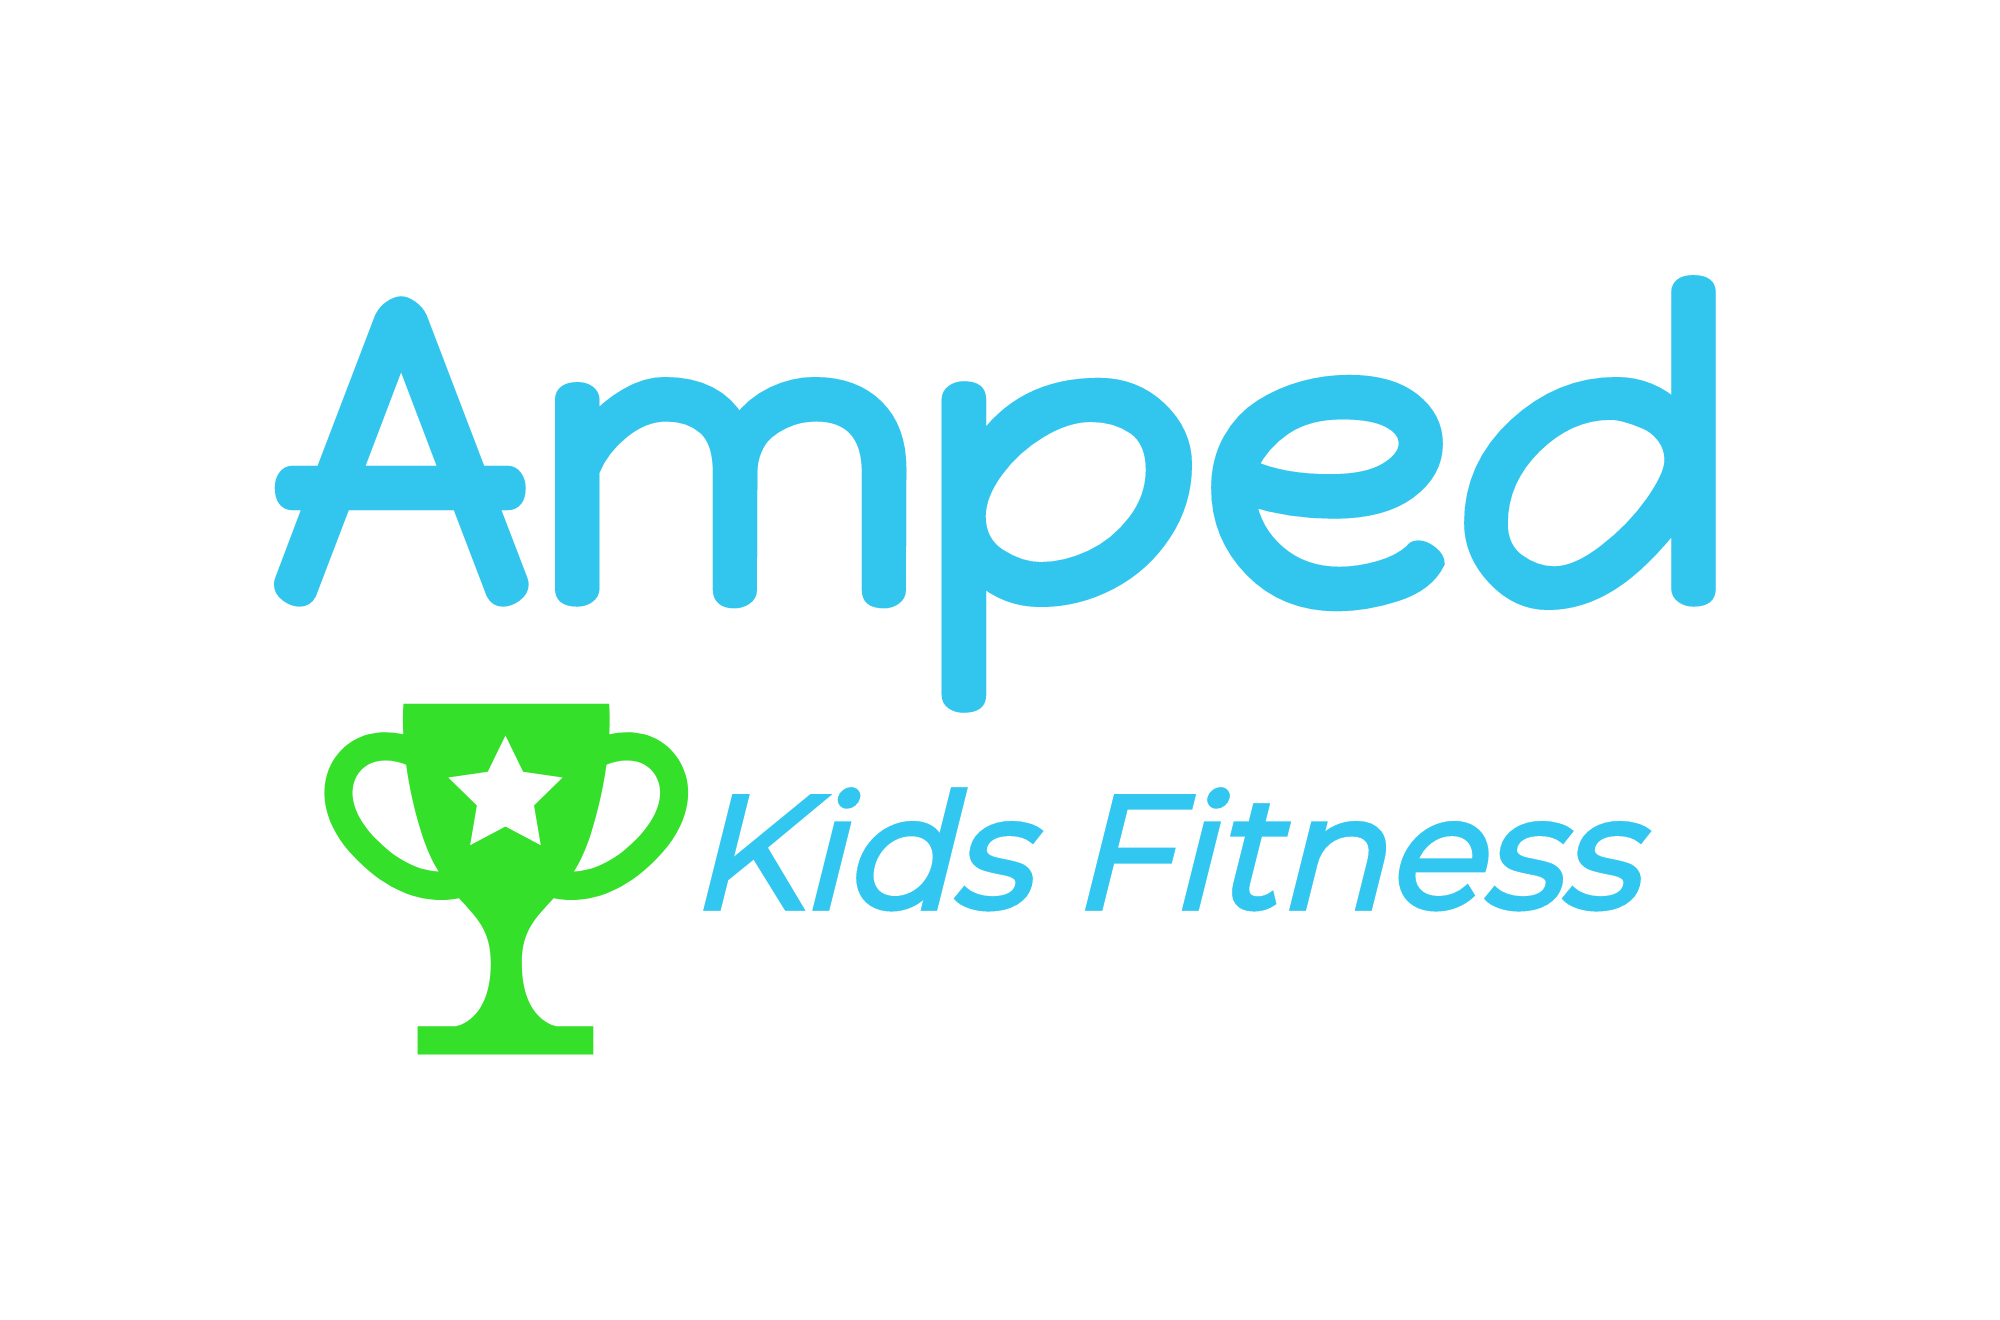 Amped Kids Fitness